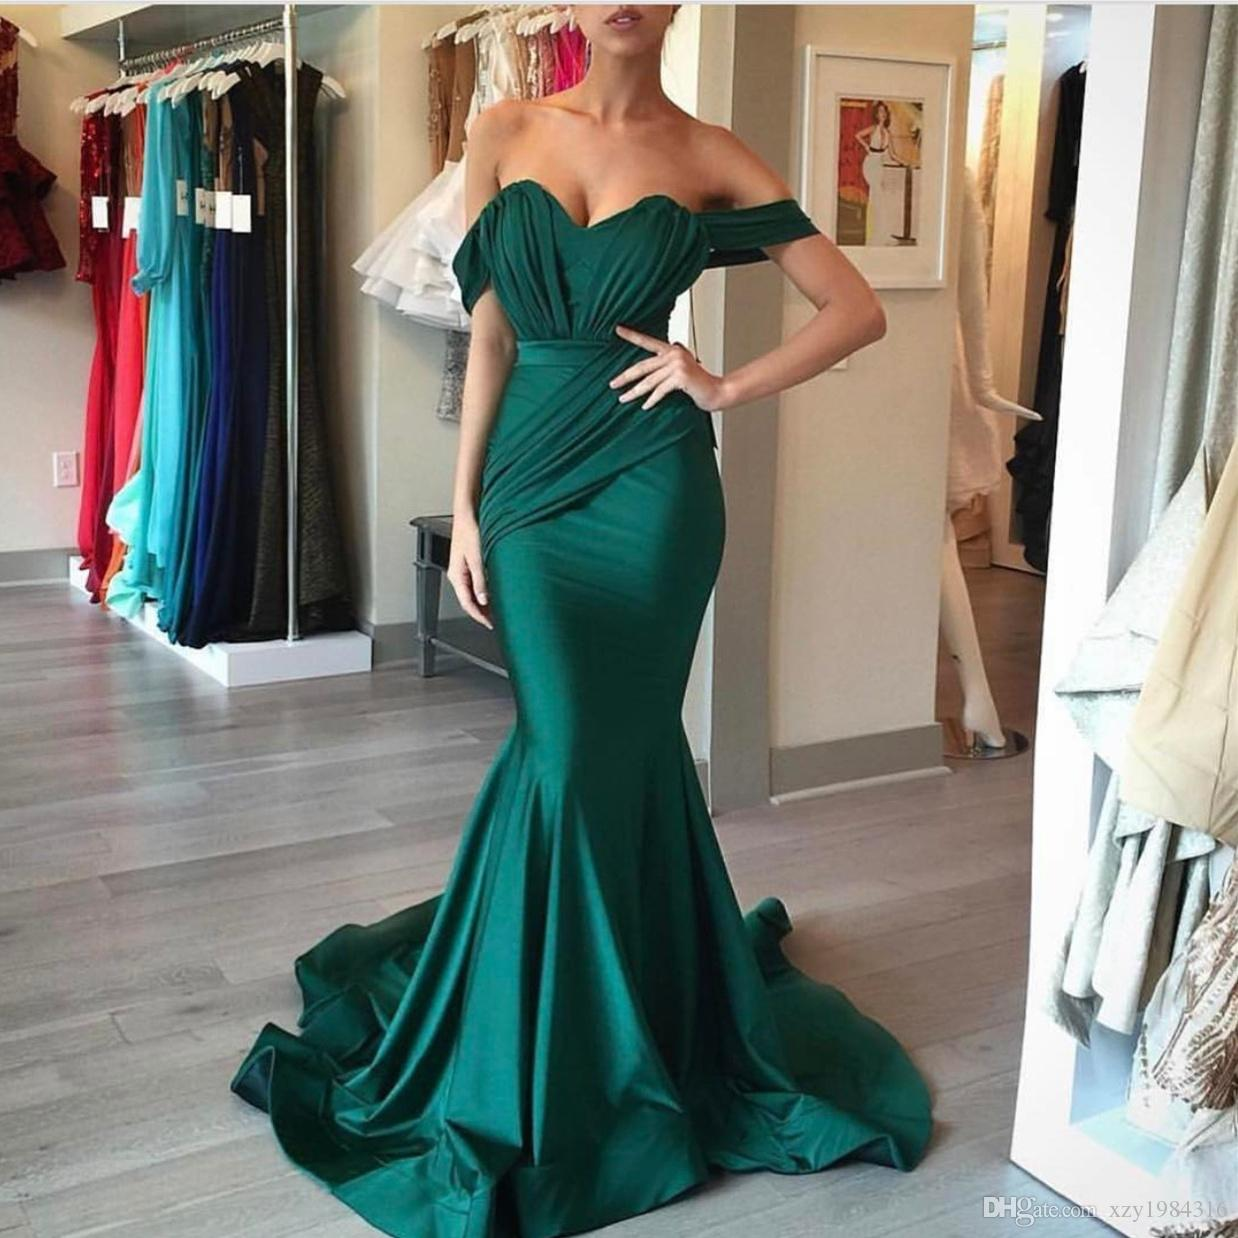 4671fcf6f034 Emerald Green Ruched Mermaid Evening Dress Red Carpet Dress Stylish Off  Shoulder Zipper Backless Formal Party Gowns Satin Long Prom Dress Short  Poofy Prom ...